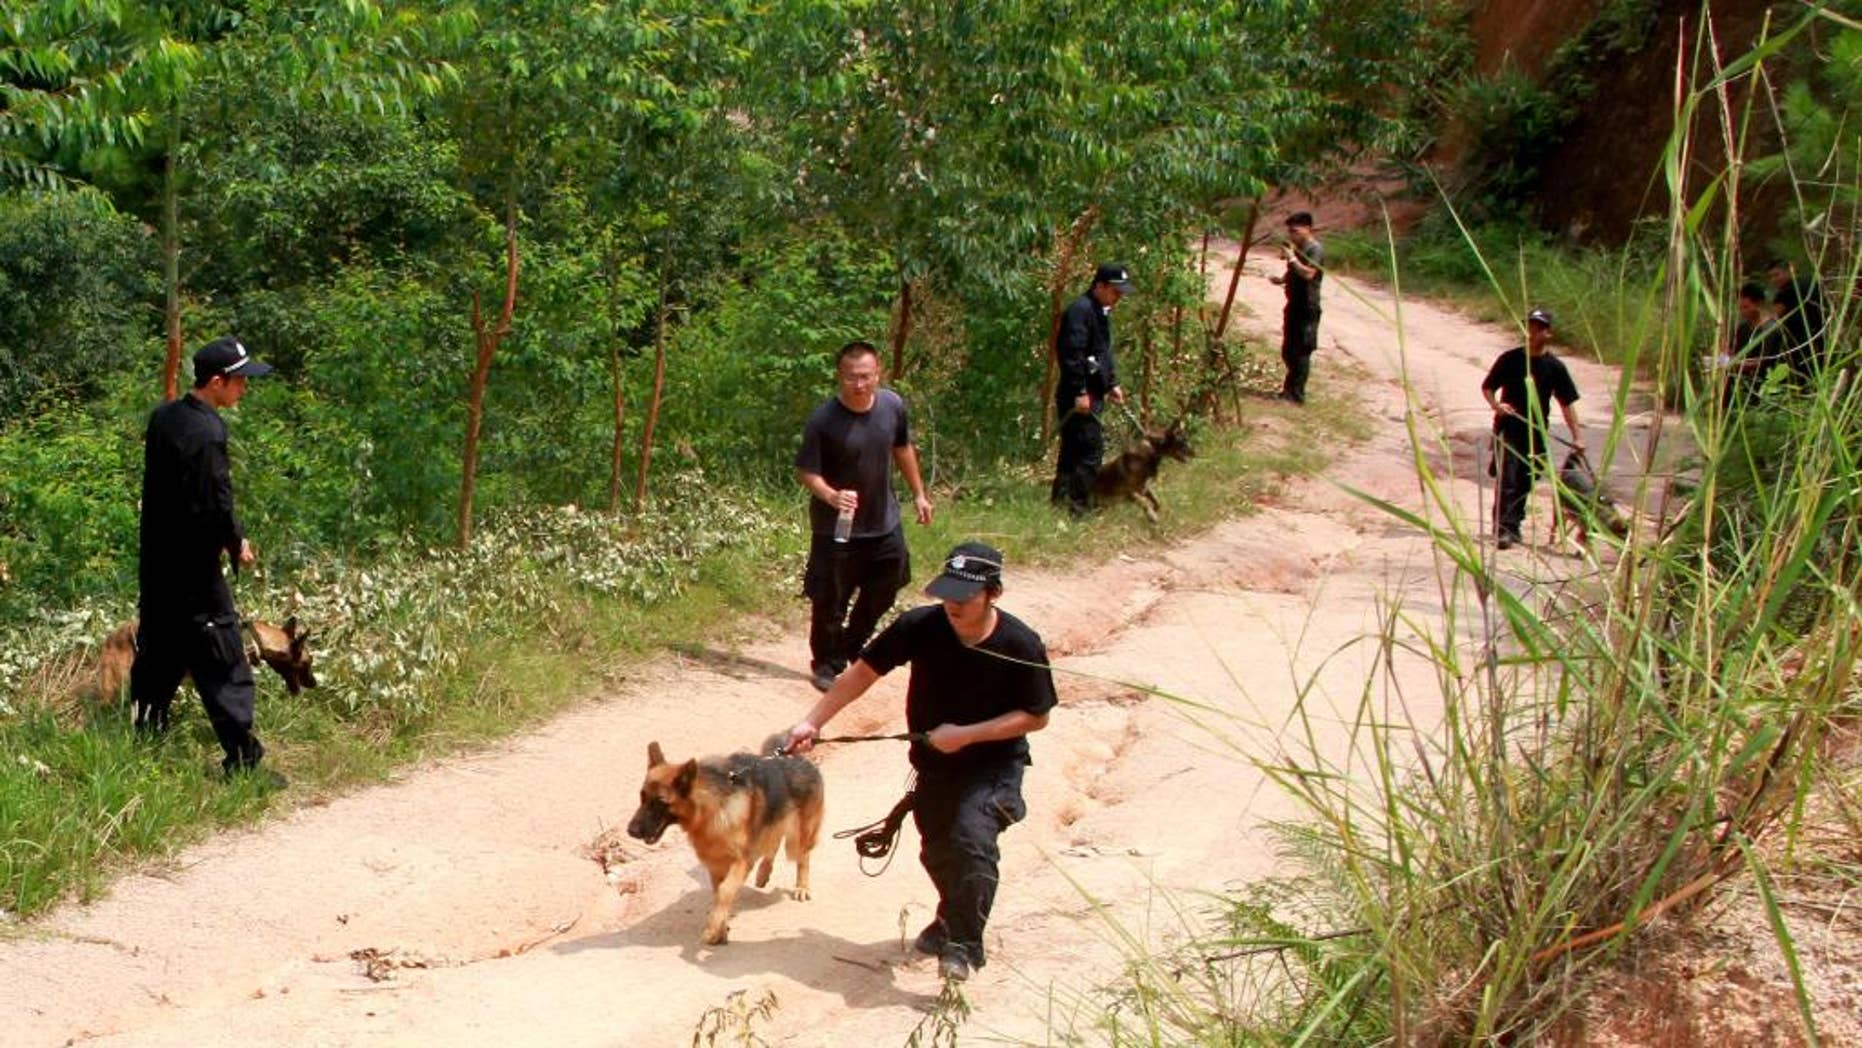 In this photo released by China's Xinhua news agency, policemen use sniffer dogs to search for a man of stabbing four elementary school students, in Pingshan Town of Lingshan County, south China's Guangxi Zhuang Autonomous Region, Friday, Sept. 26, 2014. The man fatally stabbed four elementary school students Friday while they were on their way to school, the latest of several slashing attacks targeting schoolchildren over the past decade. The county government said on its website that three of the children were killed instantly and that one died later in hospital. Officials said police are searching for 56-year-old suspect, but gave no other details. (AP Photo/Xinhua, Zhang Ailin) NO SALES